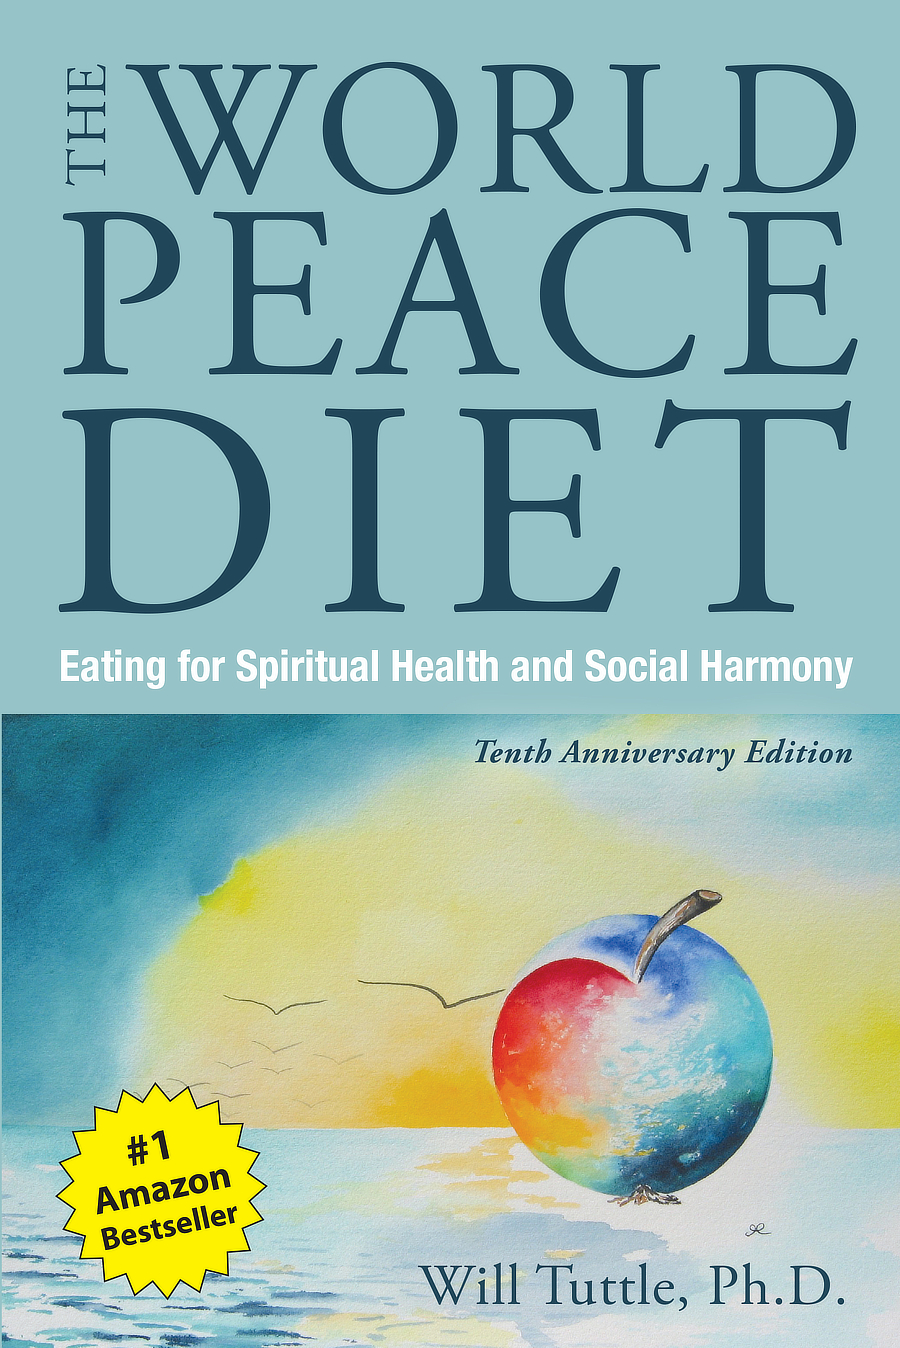 dr will tuttle phd the world peace diet the world peace diet an idea whose time has